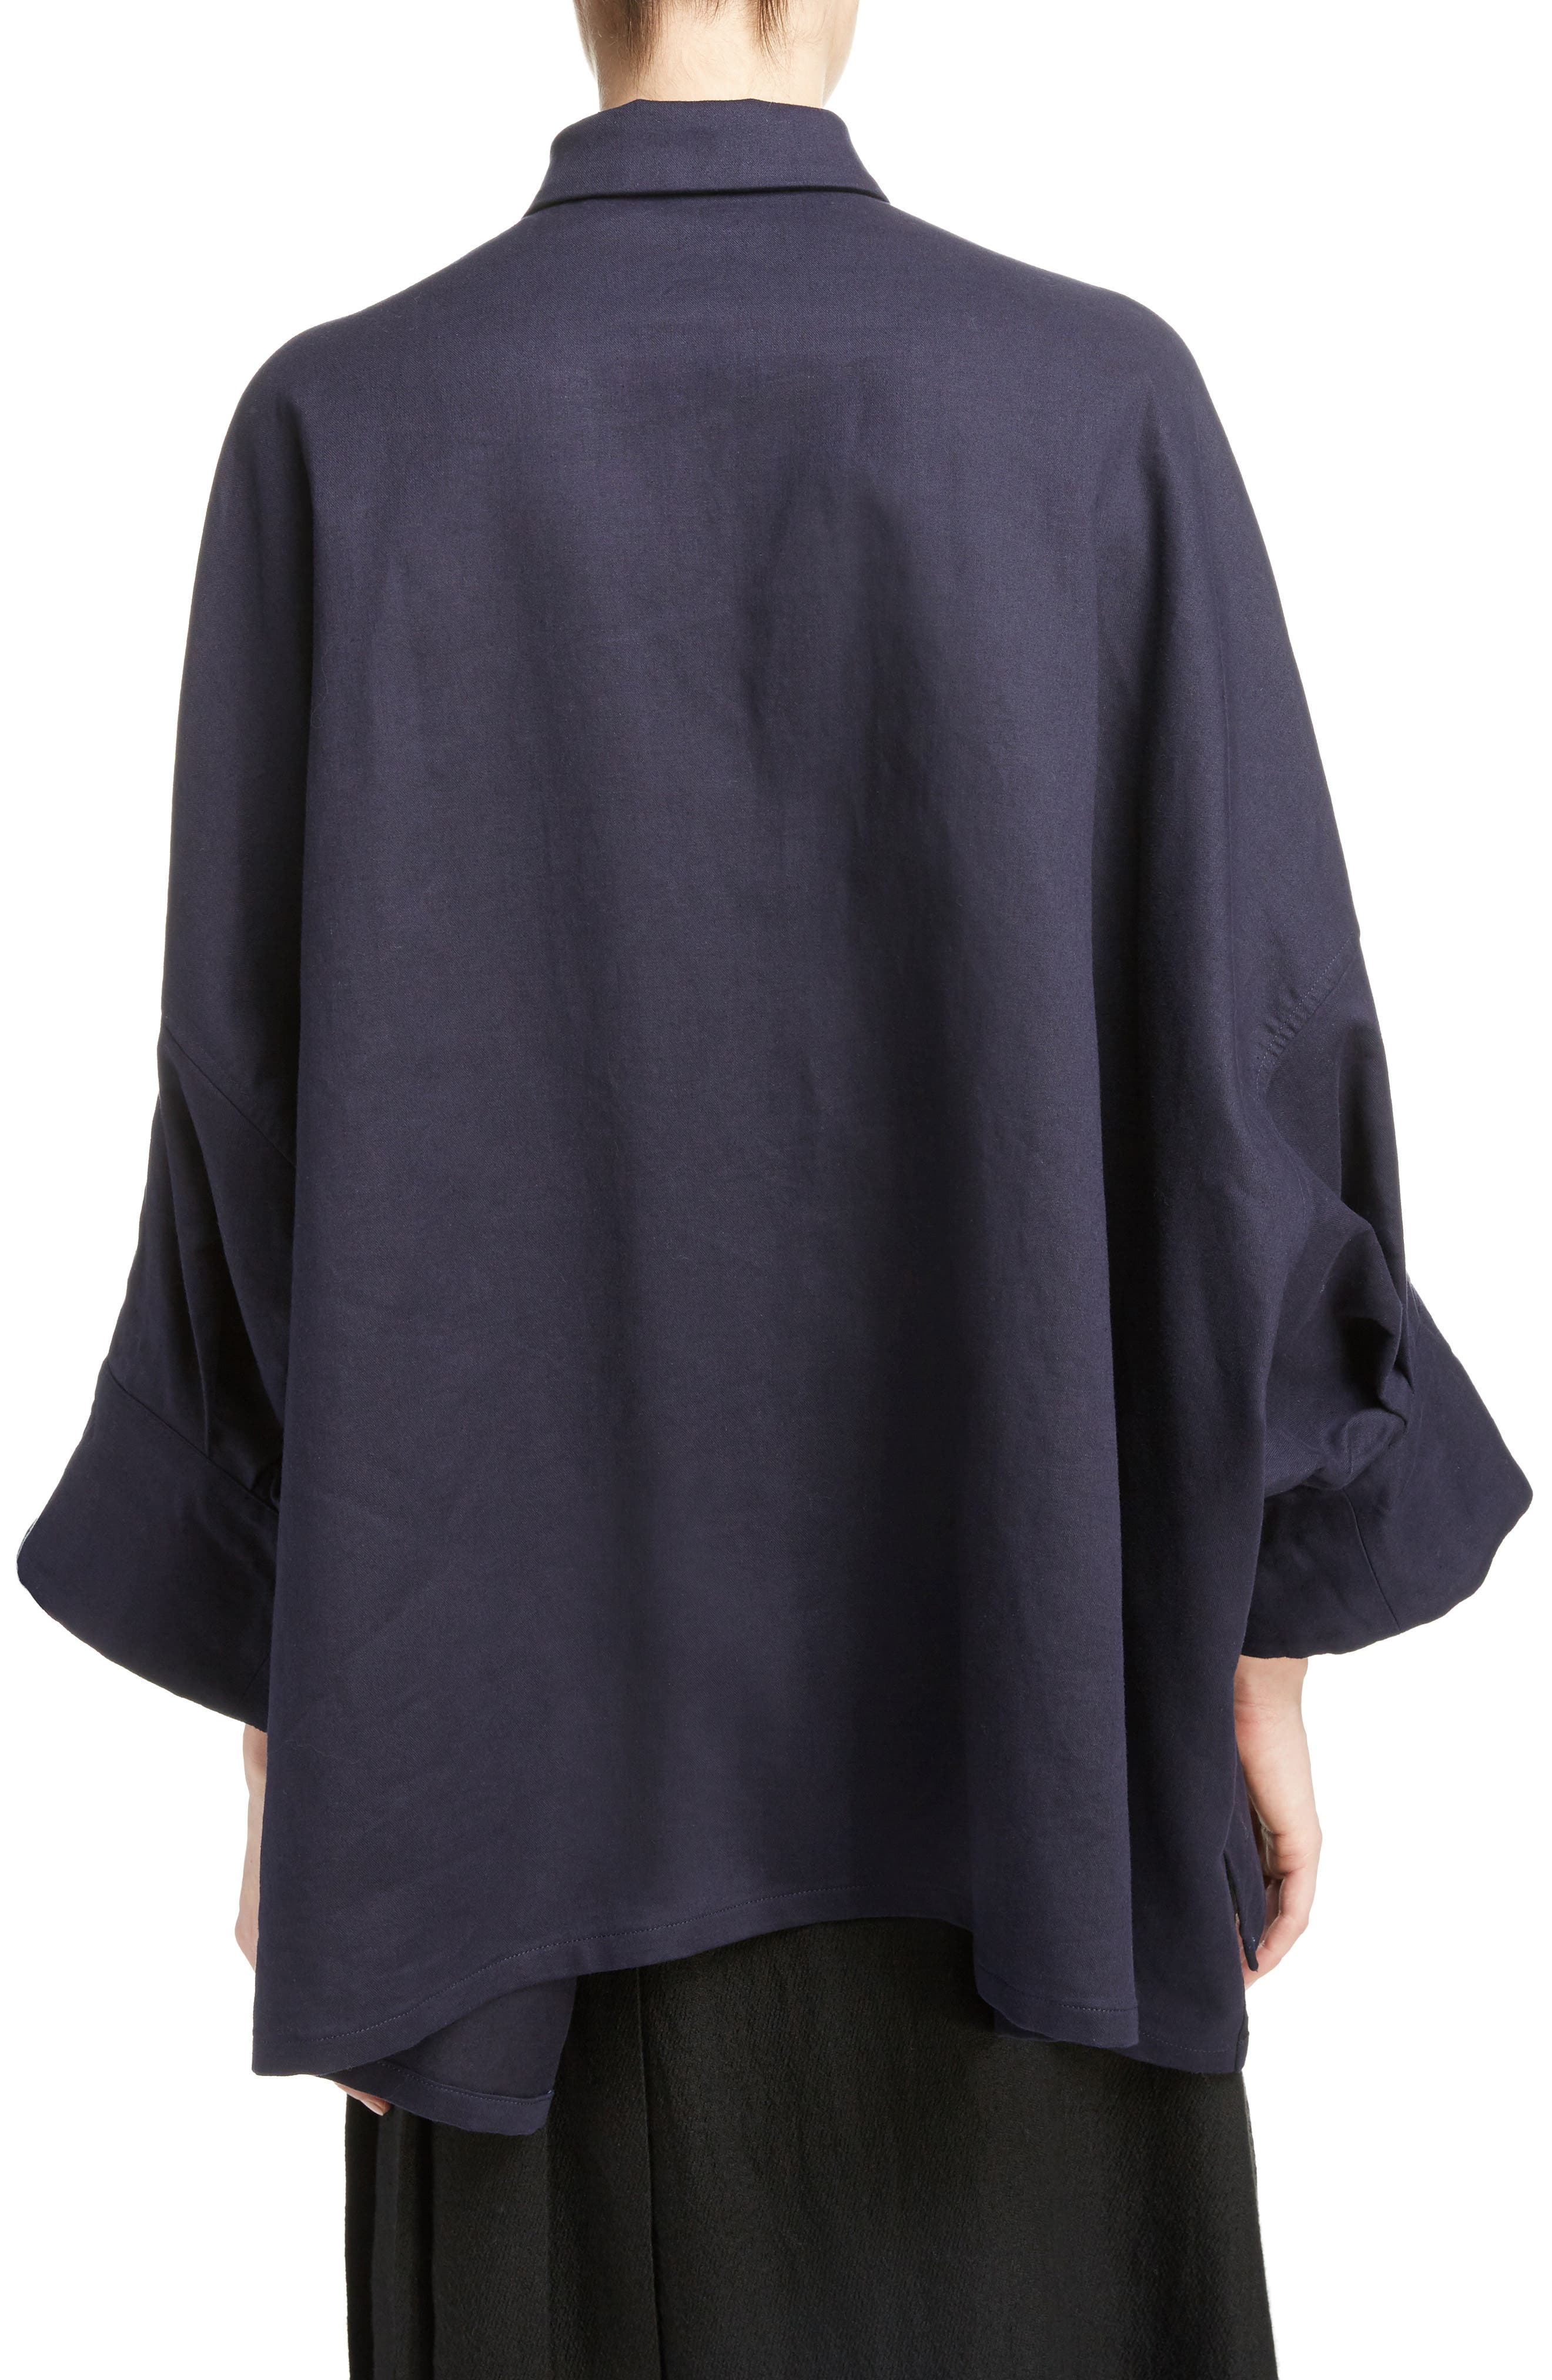 Fly Front Oversize Blouse,                             Main thumbnail 1, color,                             410